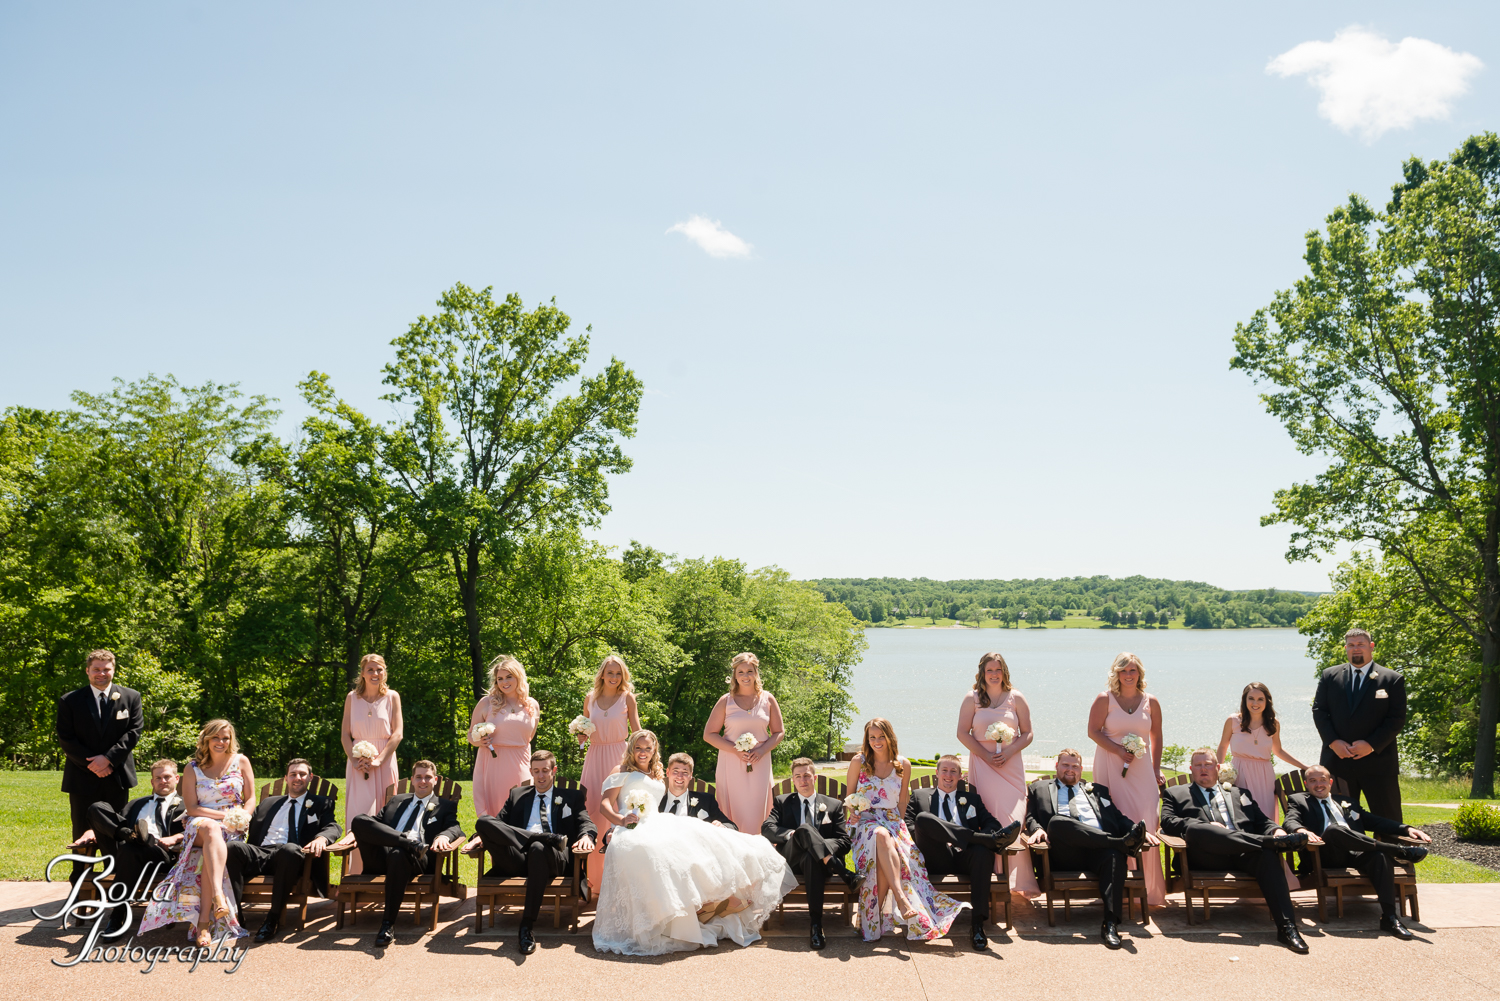 Bolla_Photography_St_Louis_wedding_photographer_Innsbrook_Resort-0145.jpg